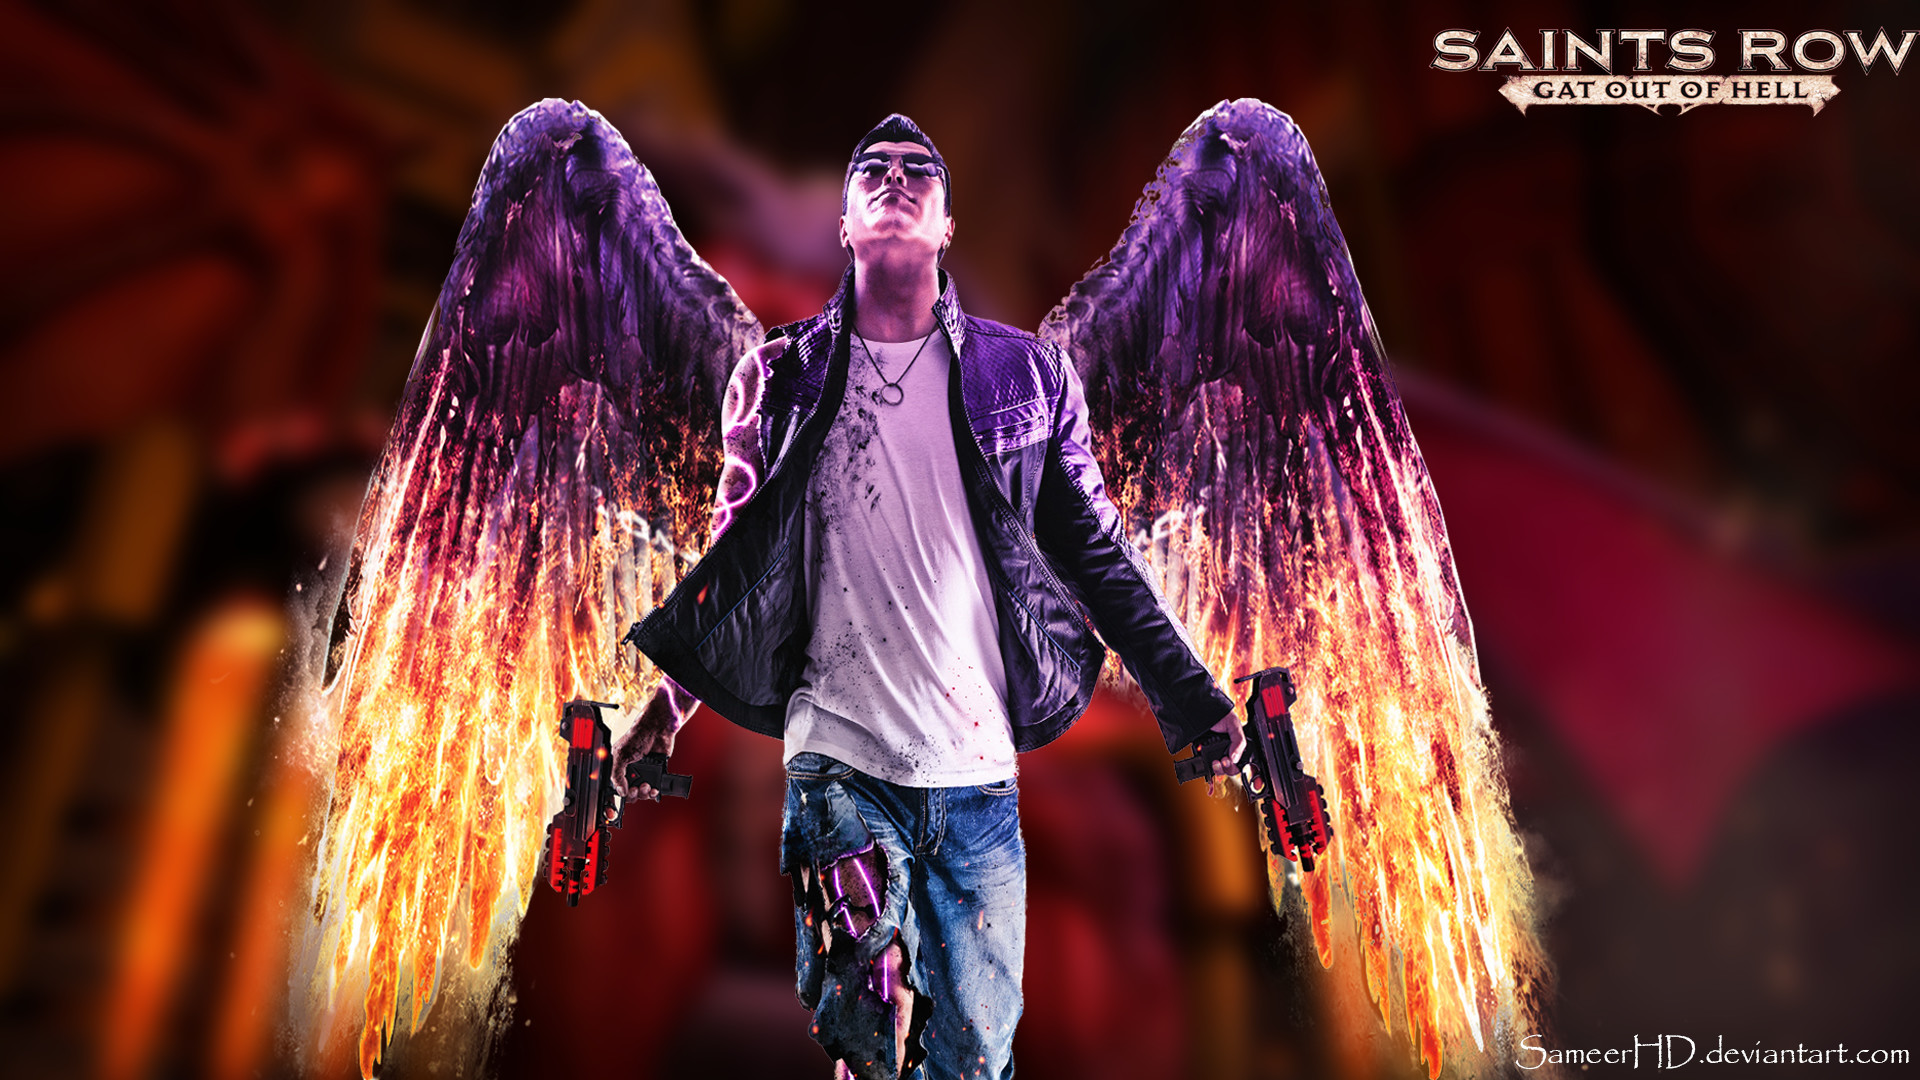 1920x1080 ... Saints Row: Gat Out Of Hell Johnny Gat Wallapaper by SameerHD